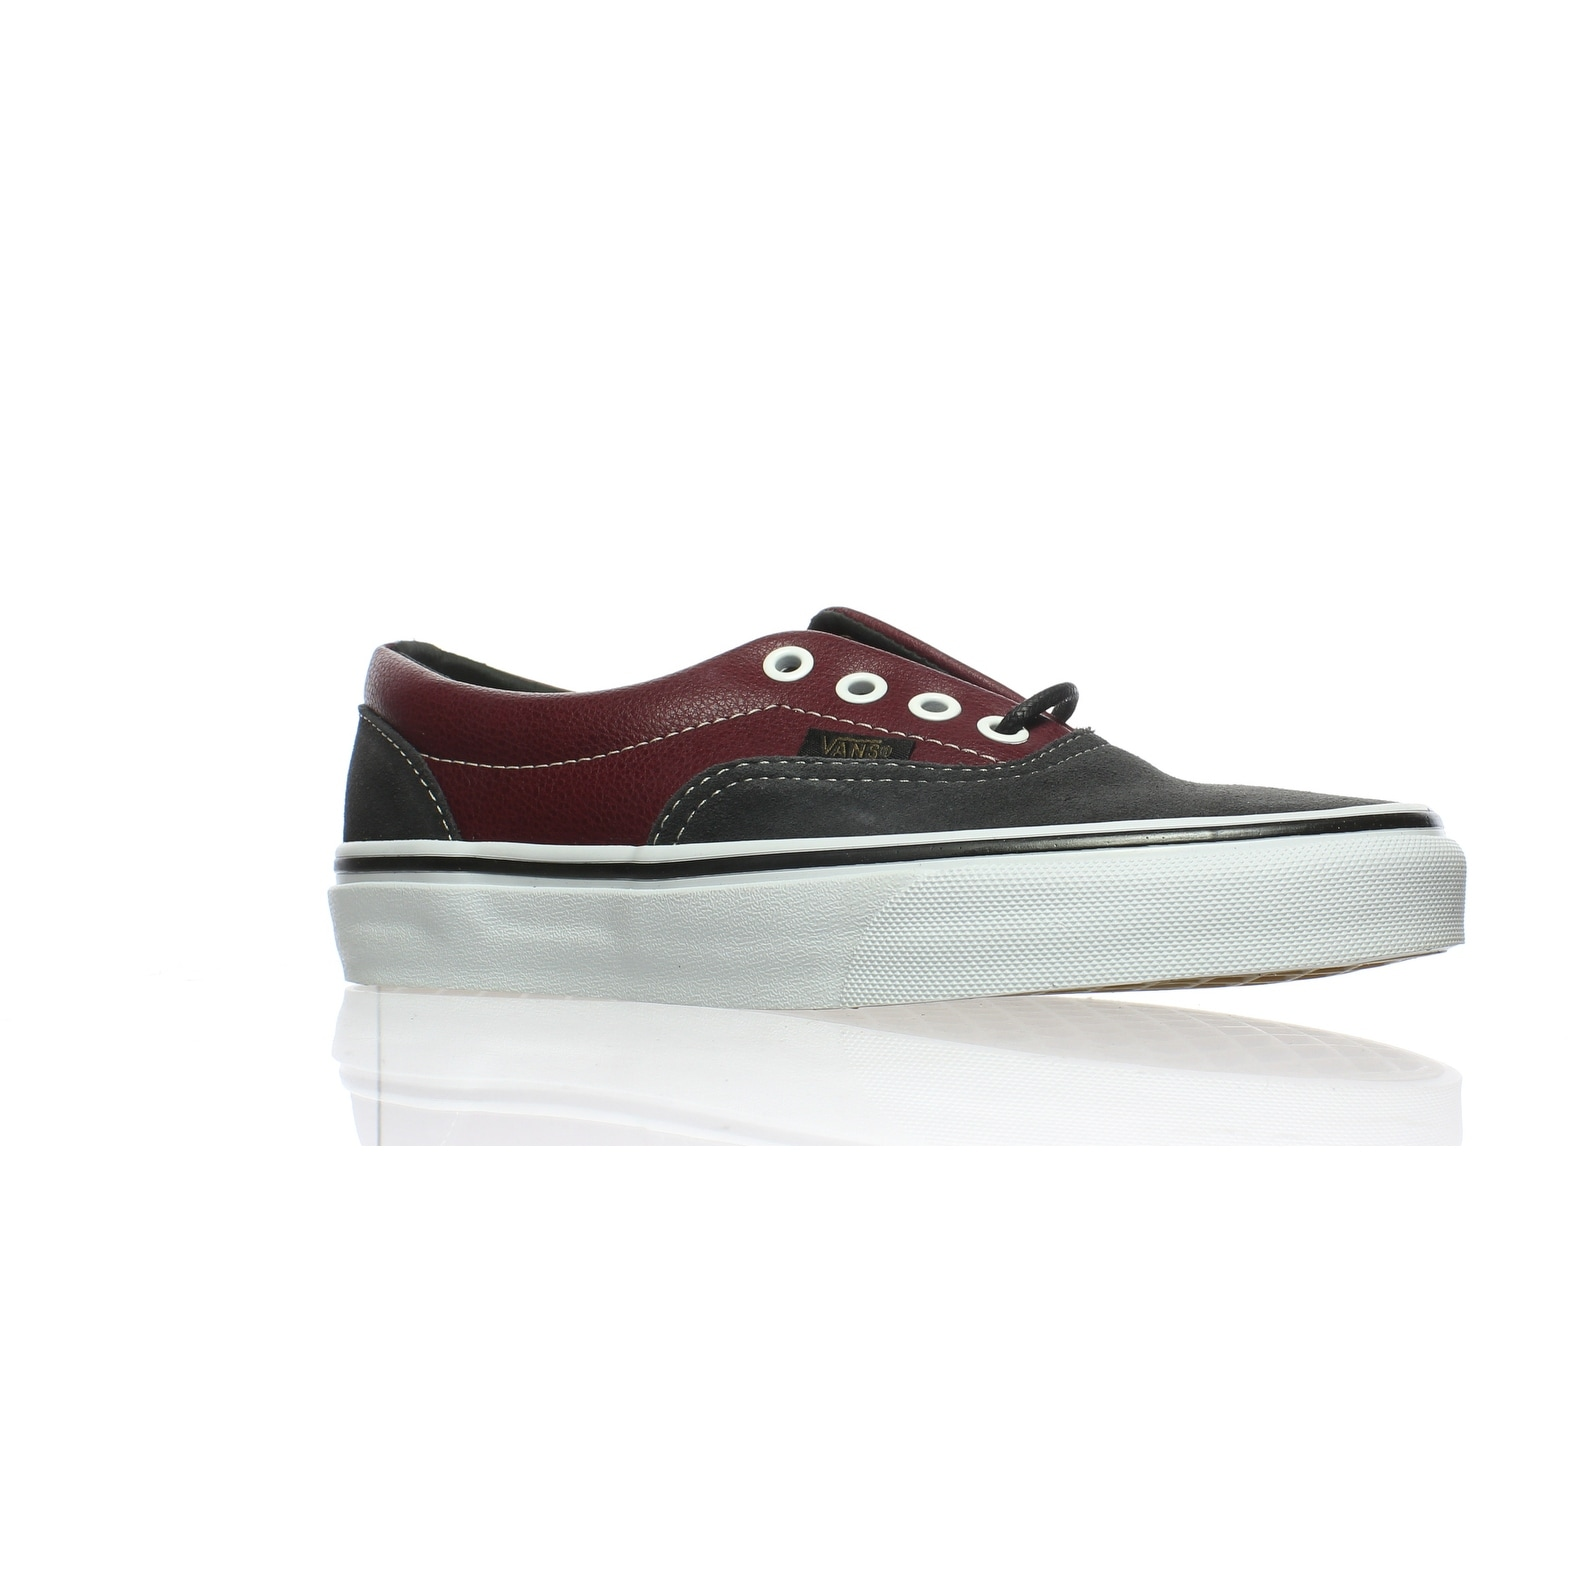 97b7a8531b Buy Vans Women s Athletic Shoes Online at Overstock